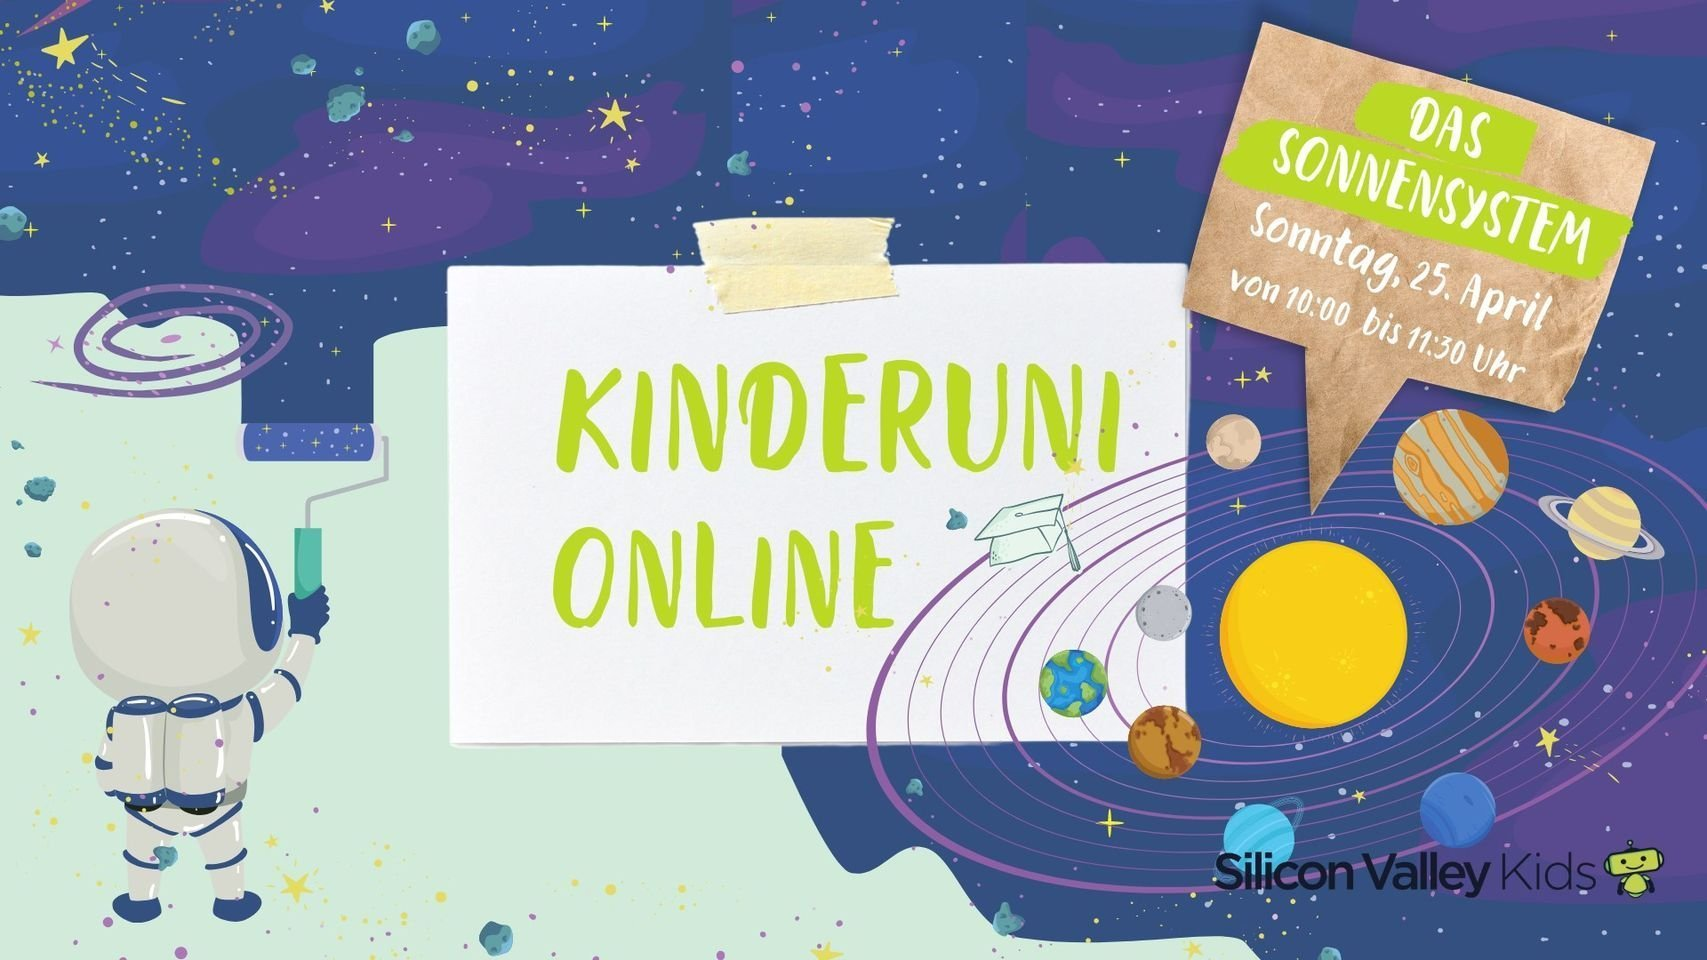 Kinder UNI Online - The Solar System